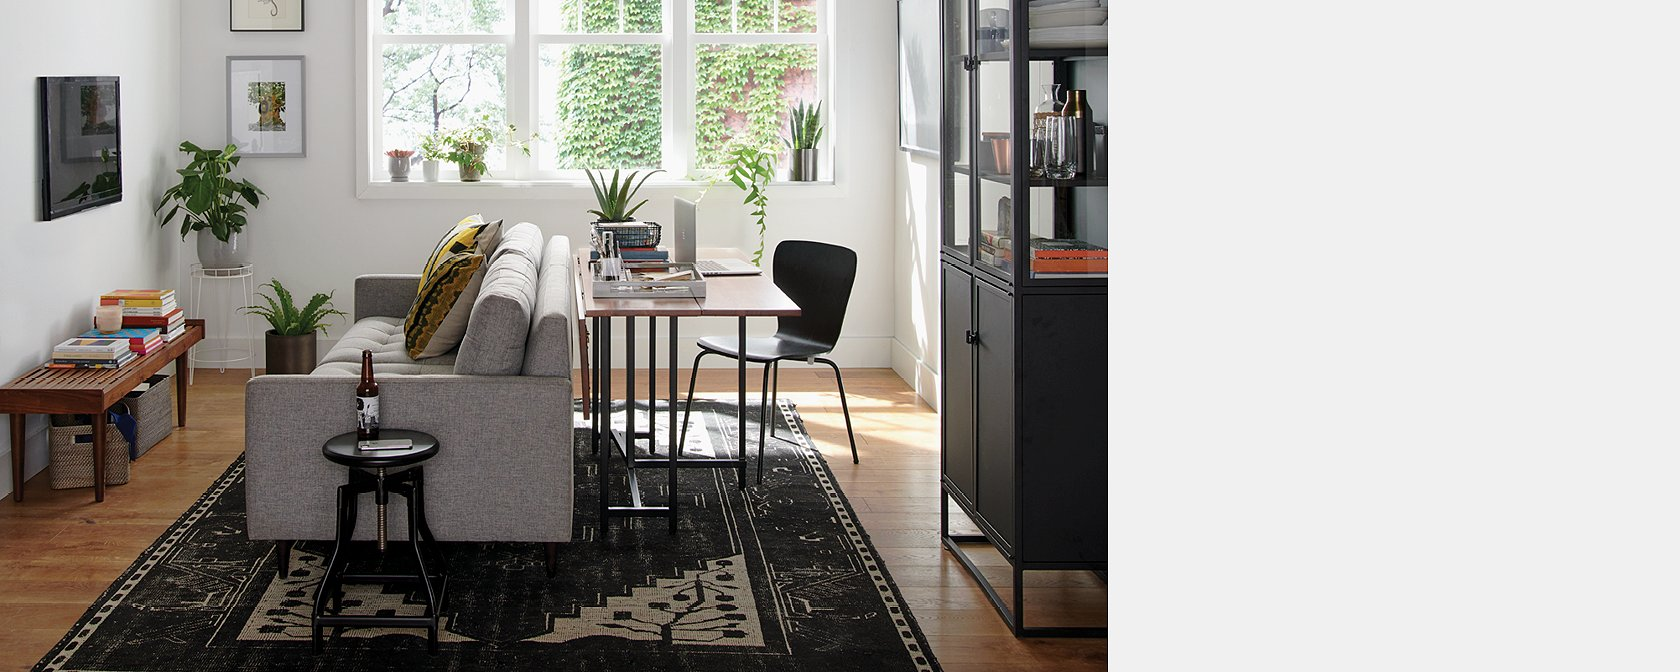 Small space furniture crate and barrel - Gifts for small apartments ...